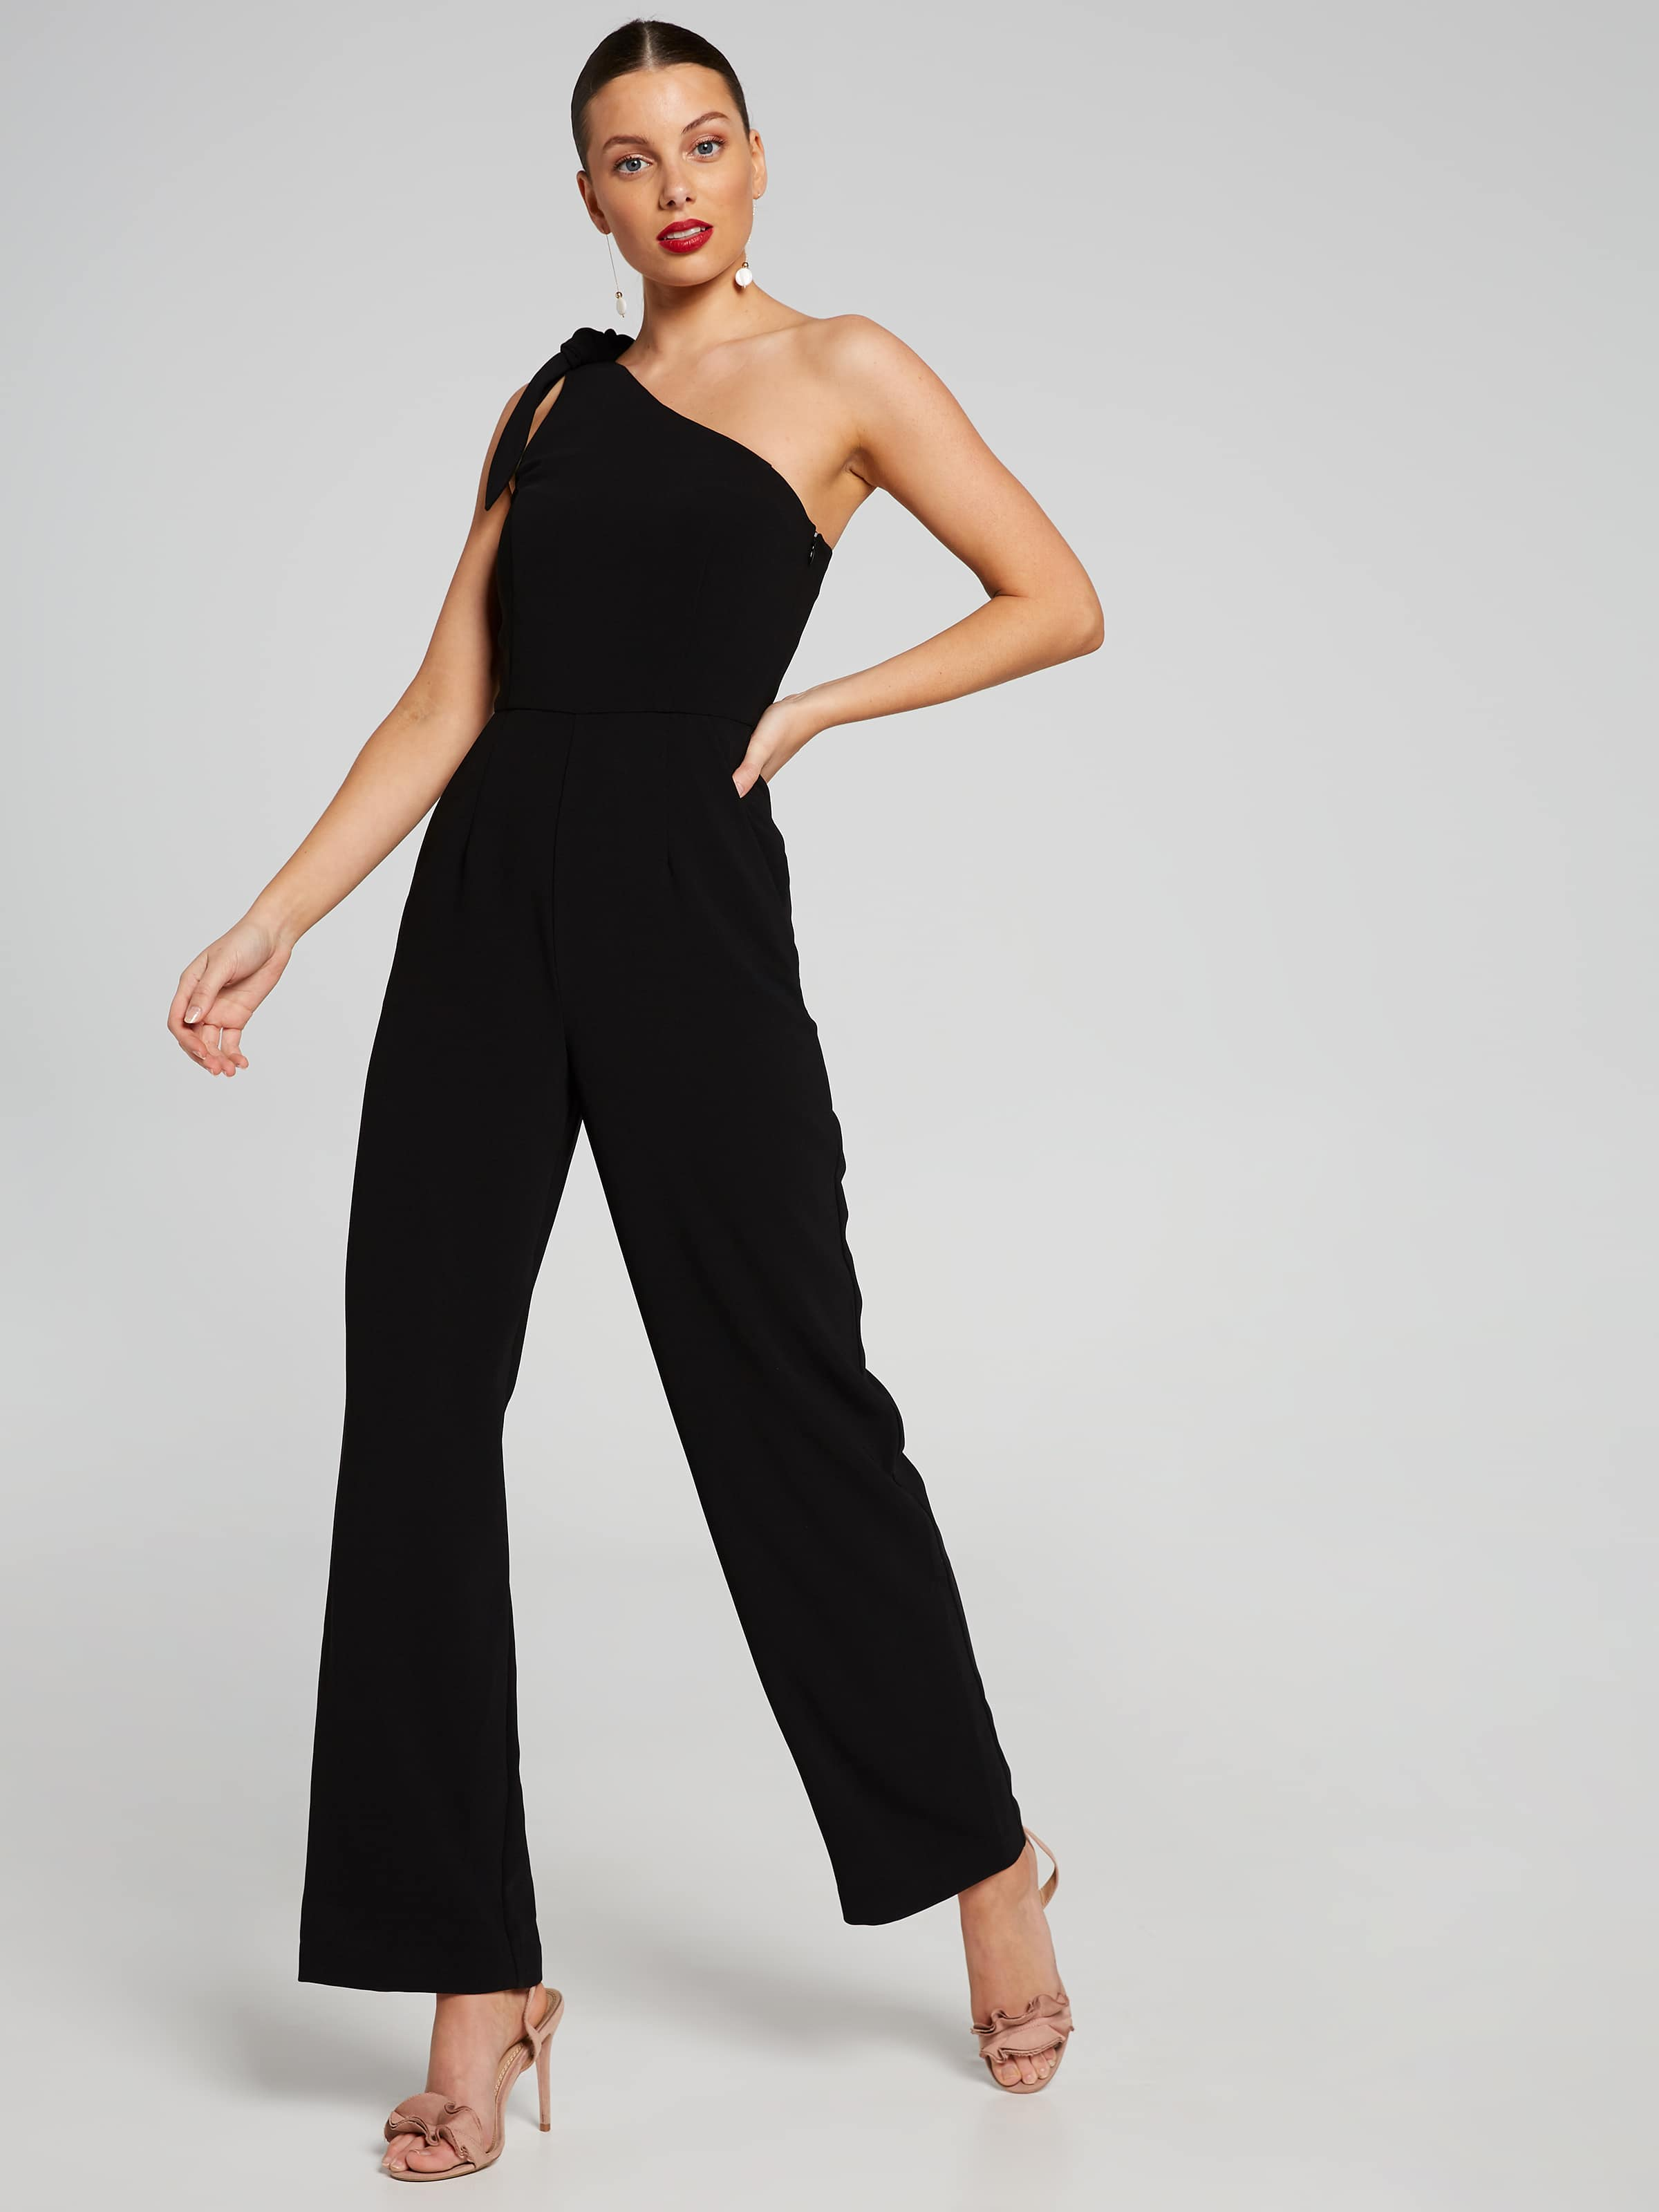 72cf1a5c7a14 Image for One Shoulder Bow Jumpsuit from Portmans Online ...